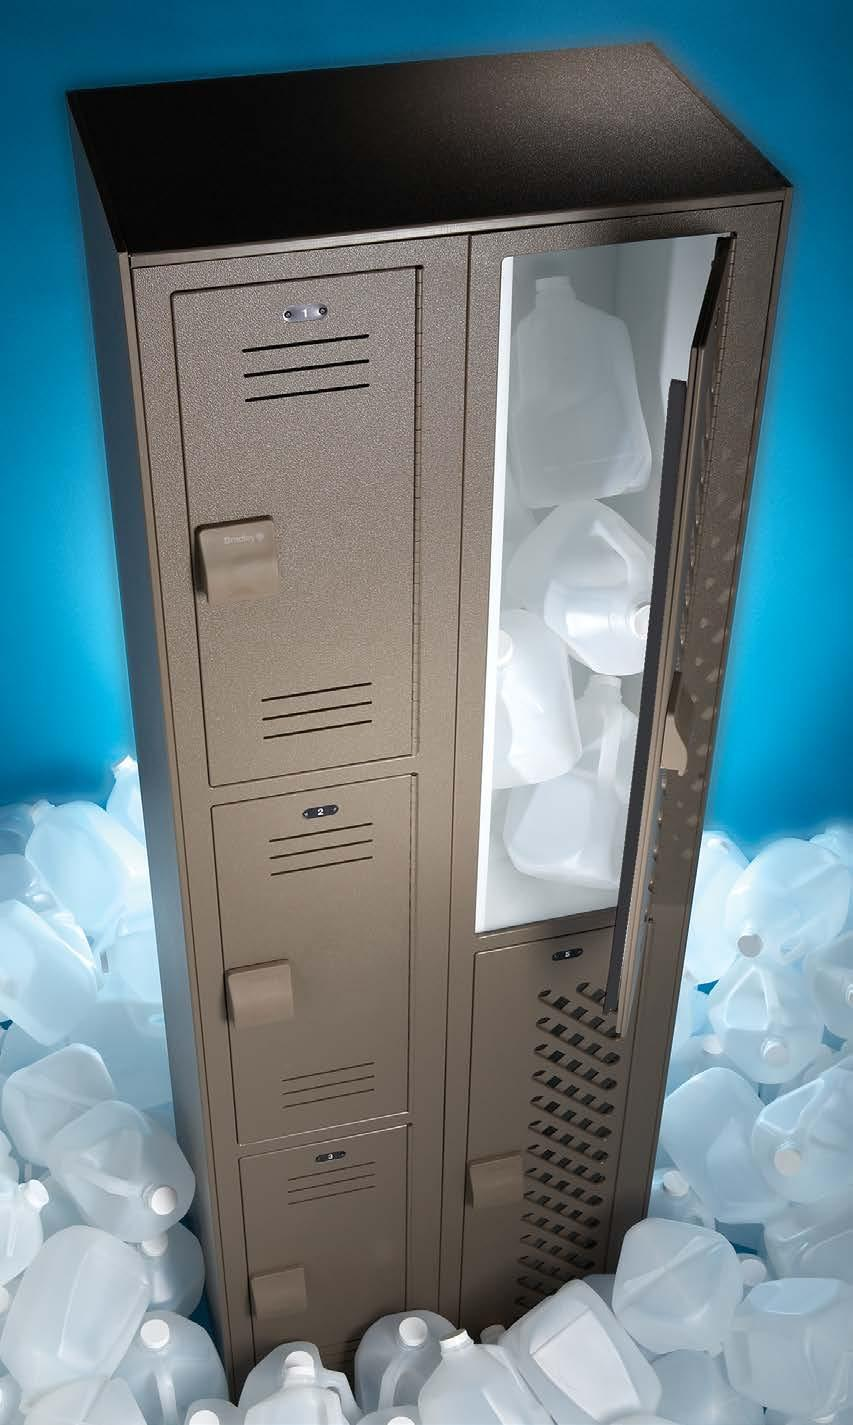 HDPE Solid Plastic Unlike metal, Lenox Lockers are constructed from